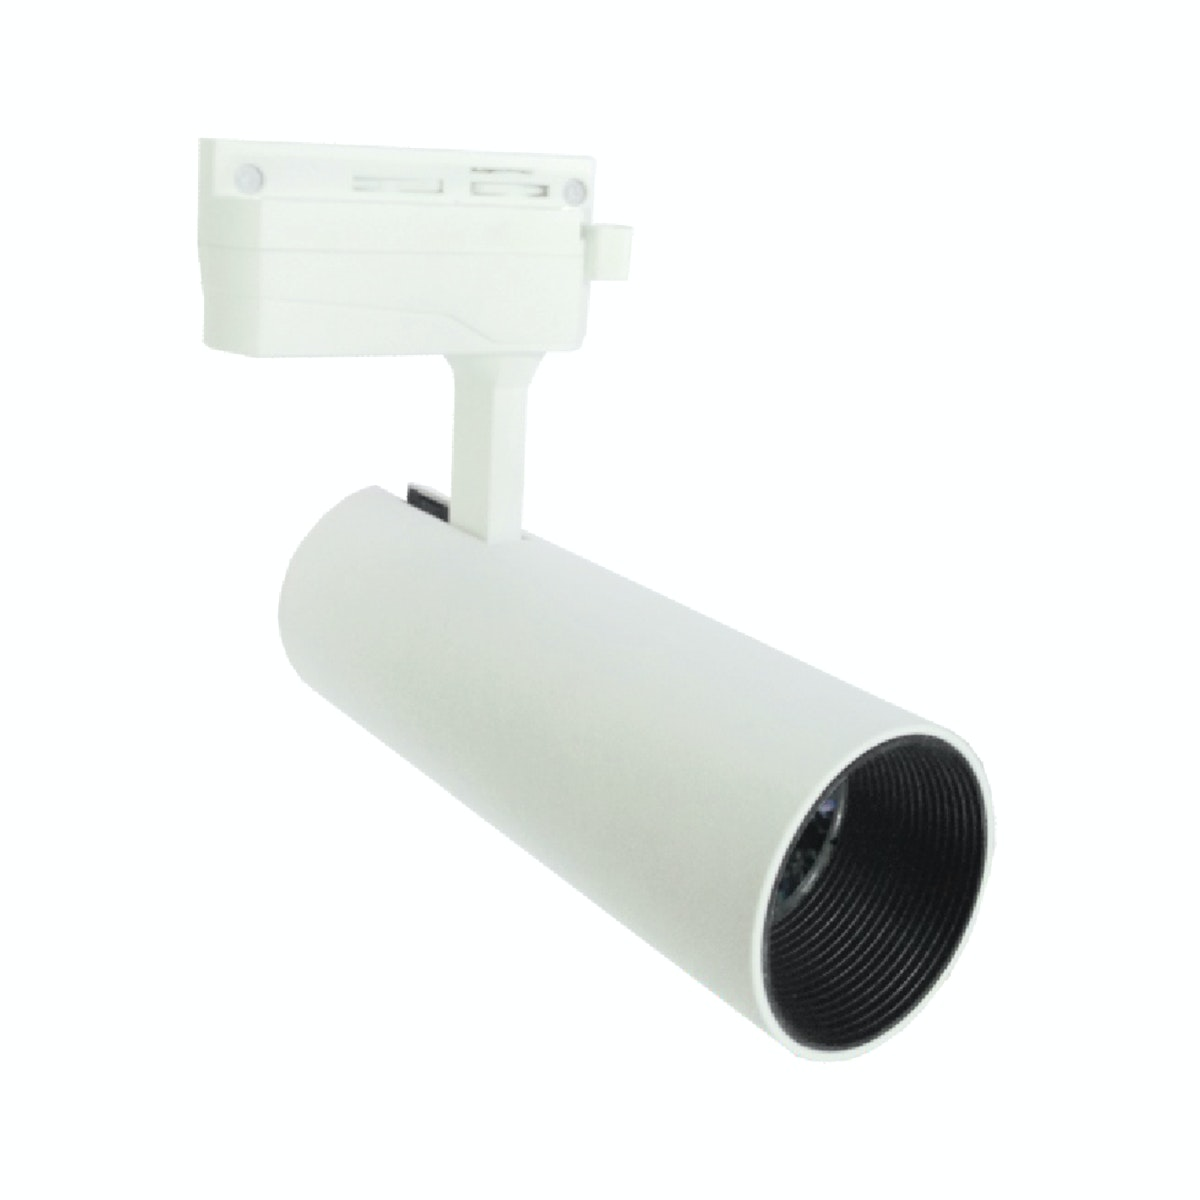 In Lite Track Light INTA273 10W Cool White, Body Color: White